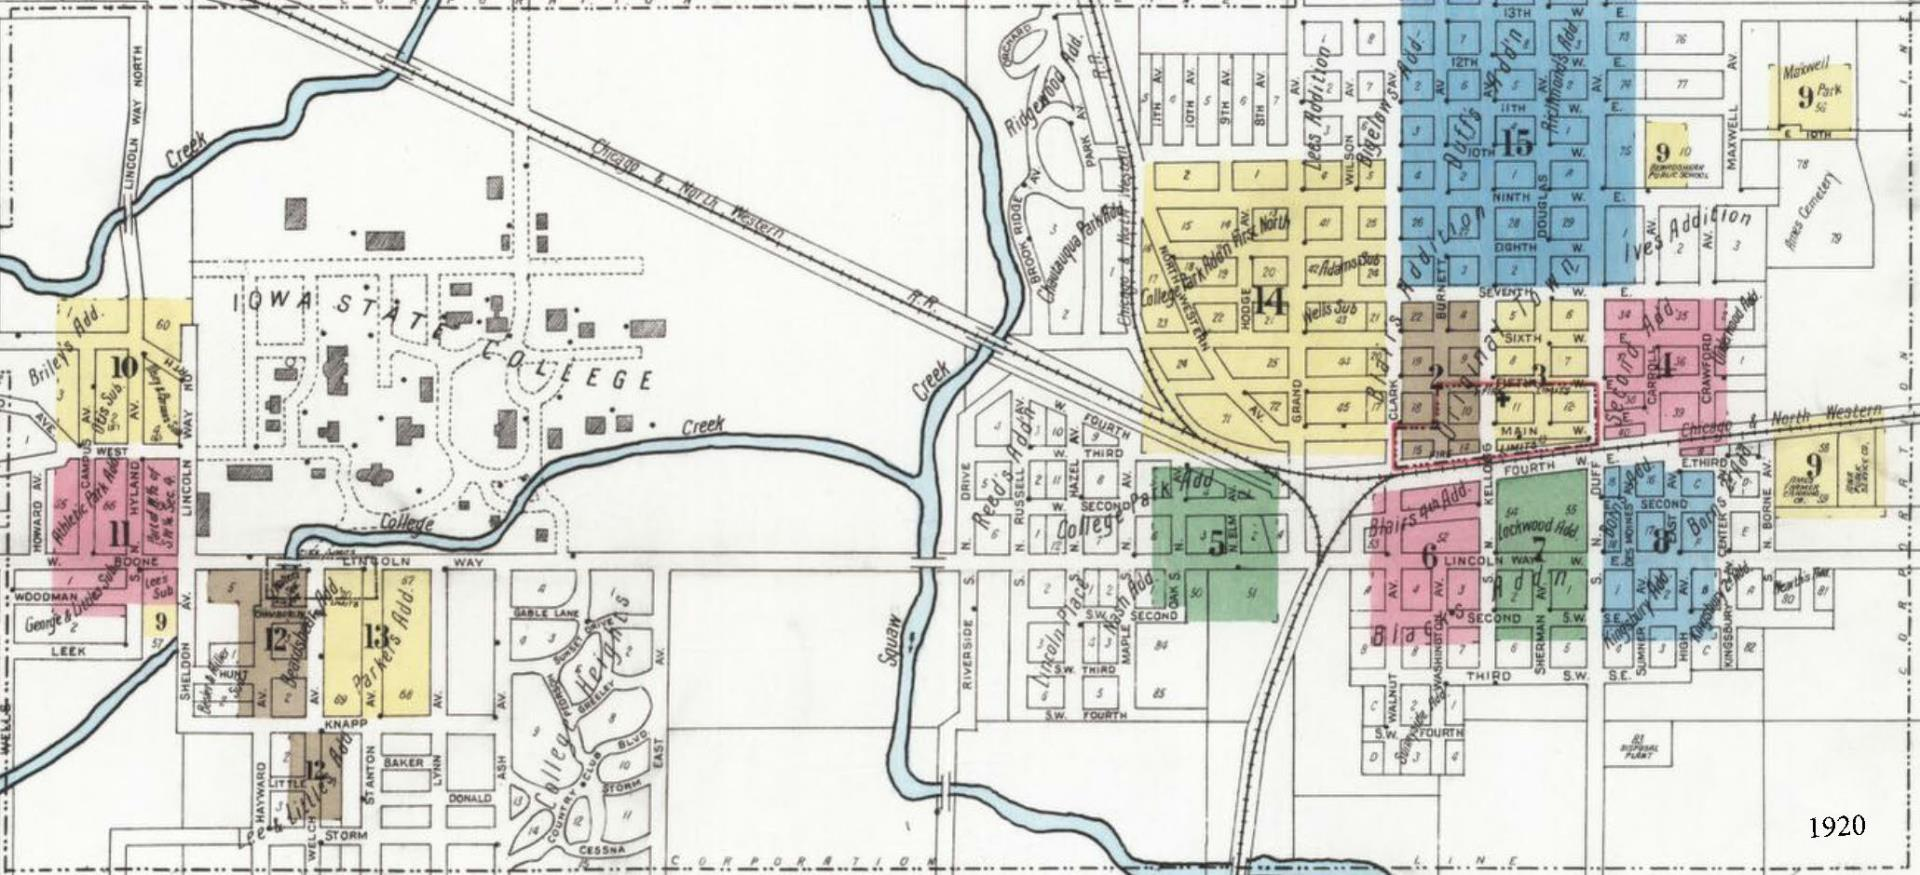 Sanborn 1920 area map